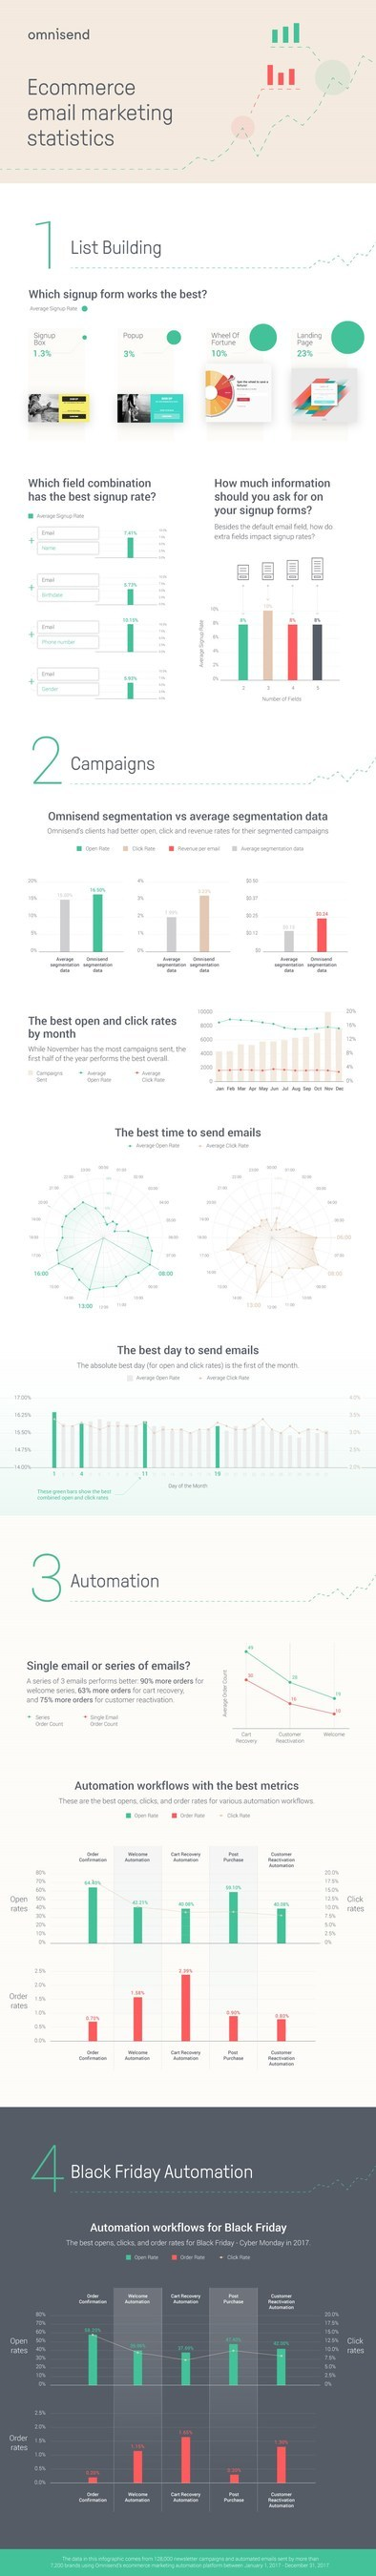 Ecommerce Email Marketing Infographic (PRNewsfoto/Omnisend)